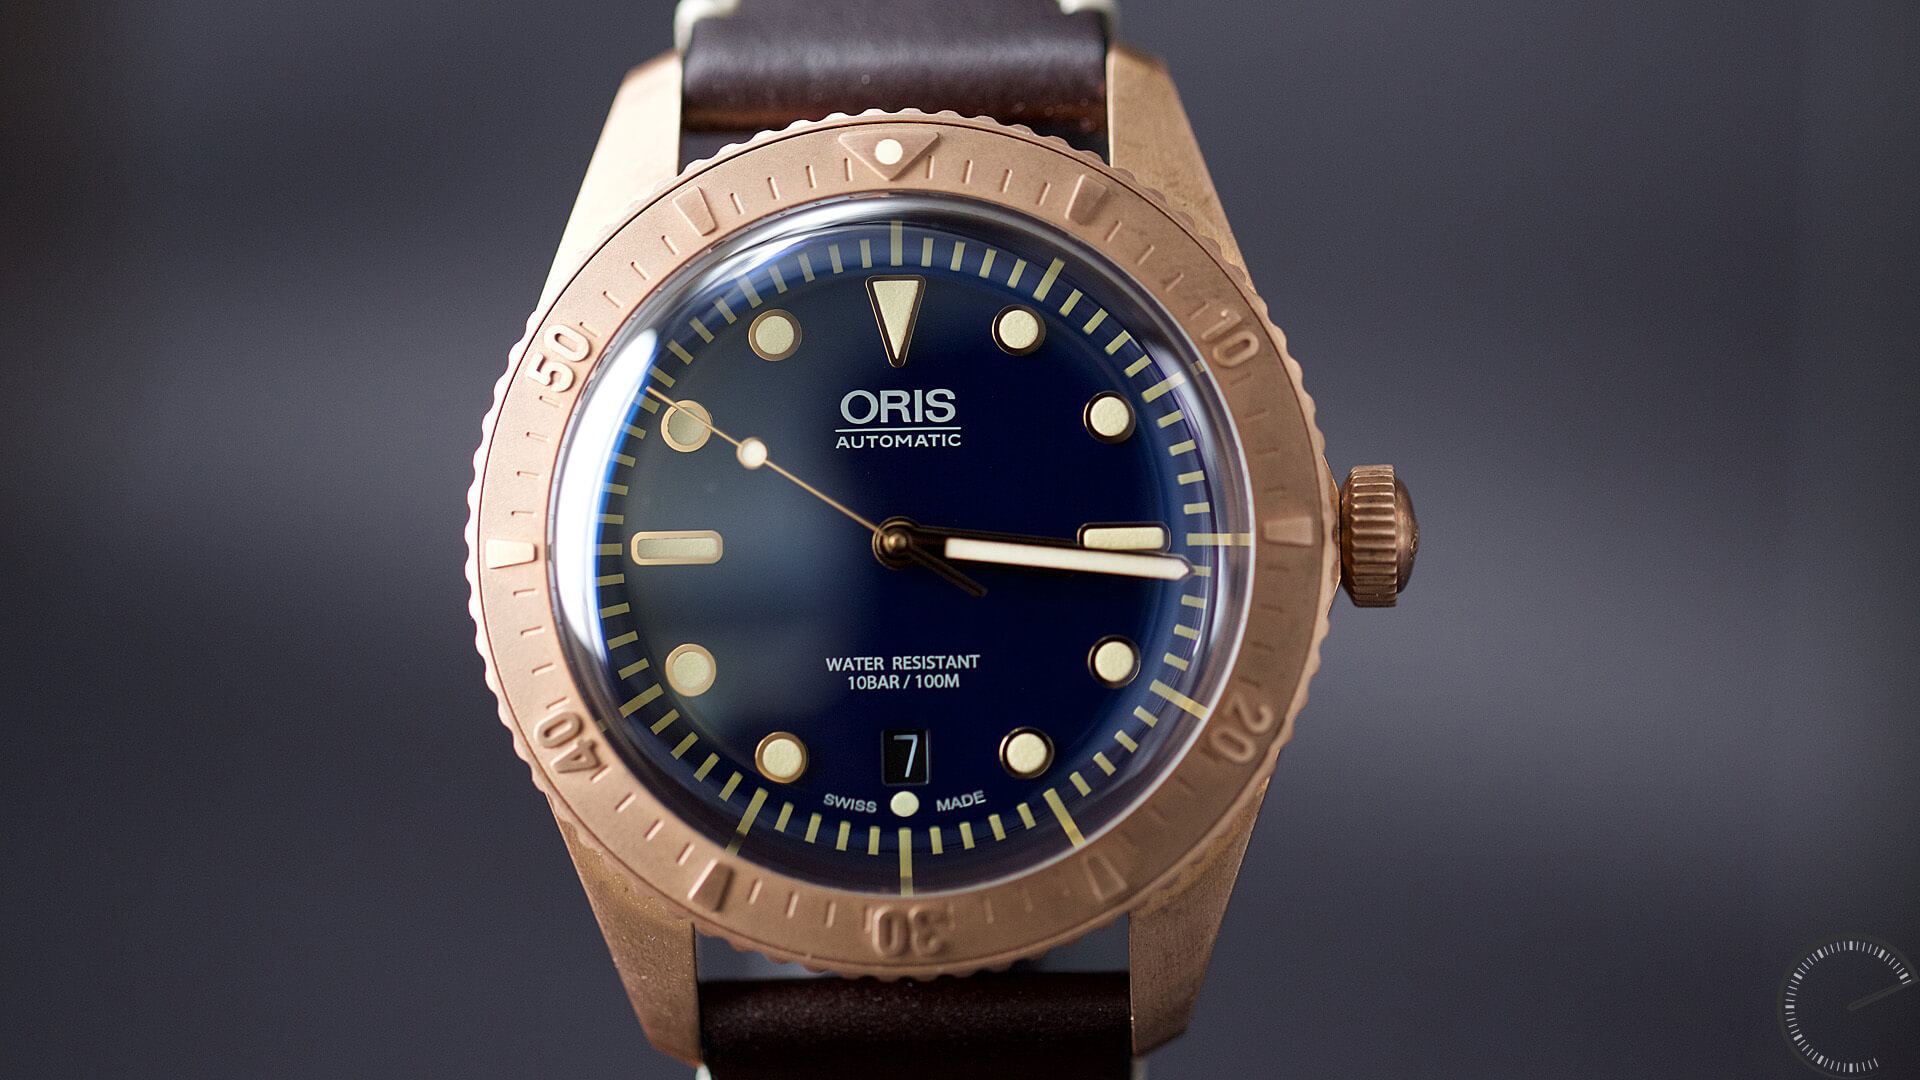 Oris_Carl_Brashear_Limited_Edition_dial - ESCAPEMENT magazine - watch reviews by Angus Davies